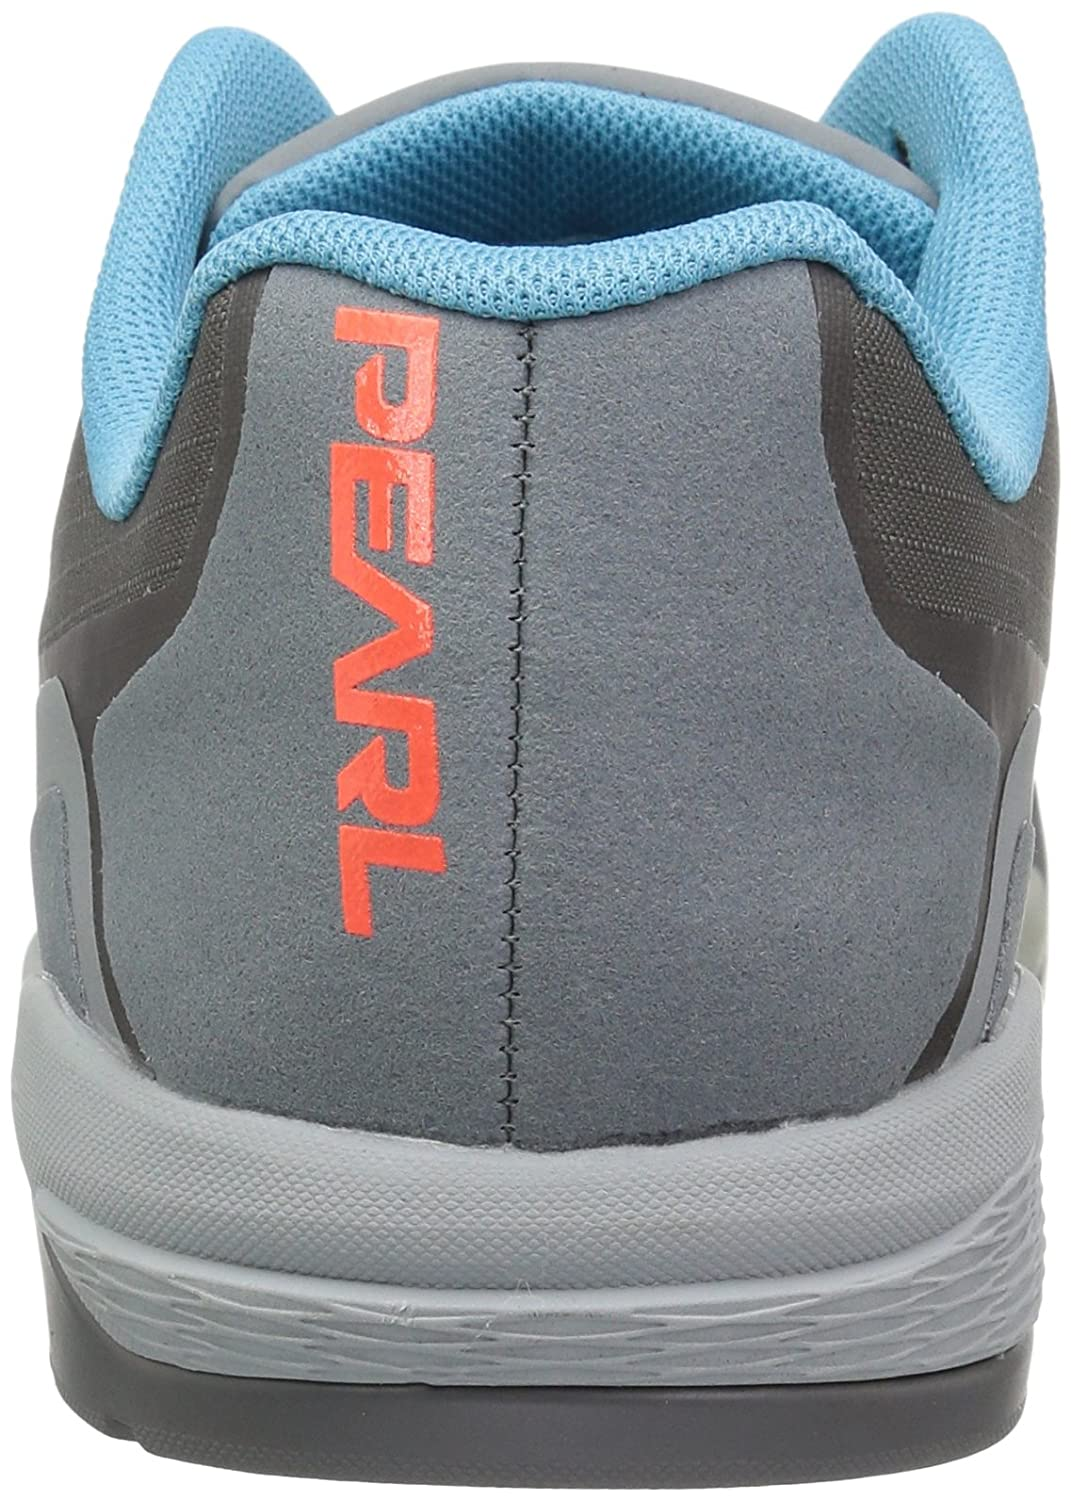 Pearl iZUMi Women's W X-Alp Launch Cycling Shoe B072636ZC6 36.5 M EU (5.5 US)|Smoked Pearl/Monument